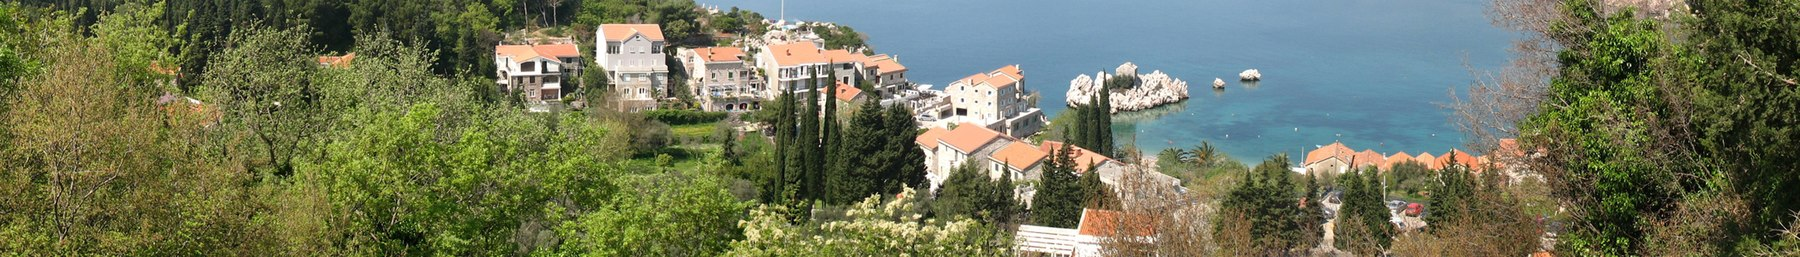 Seaside houses in Montenegro